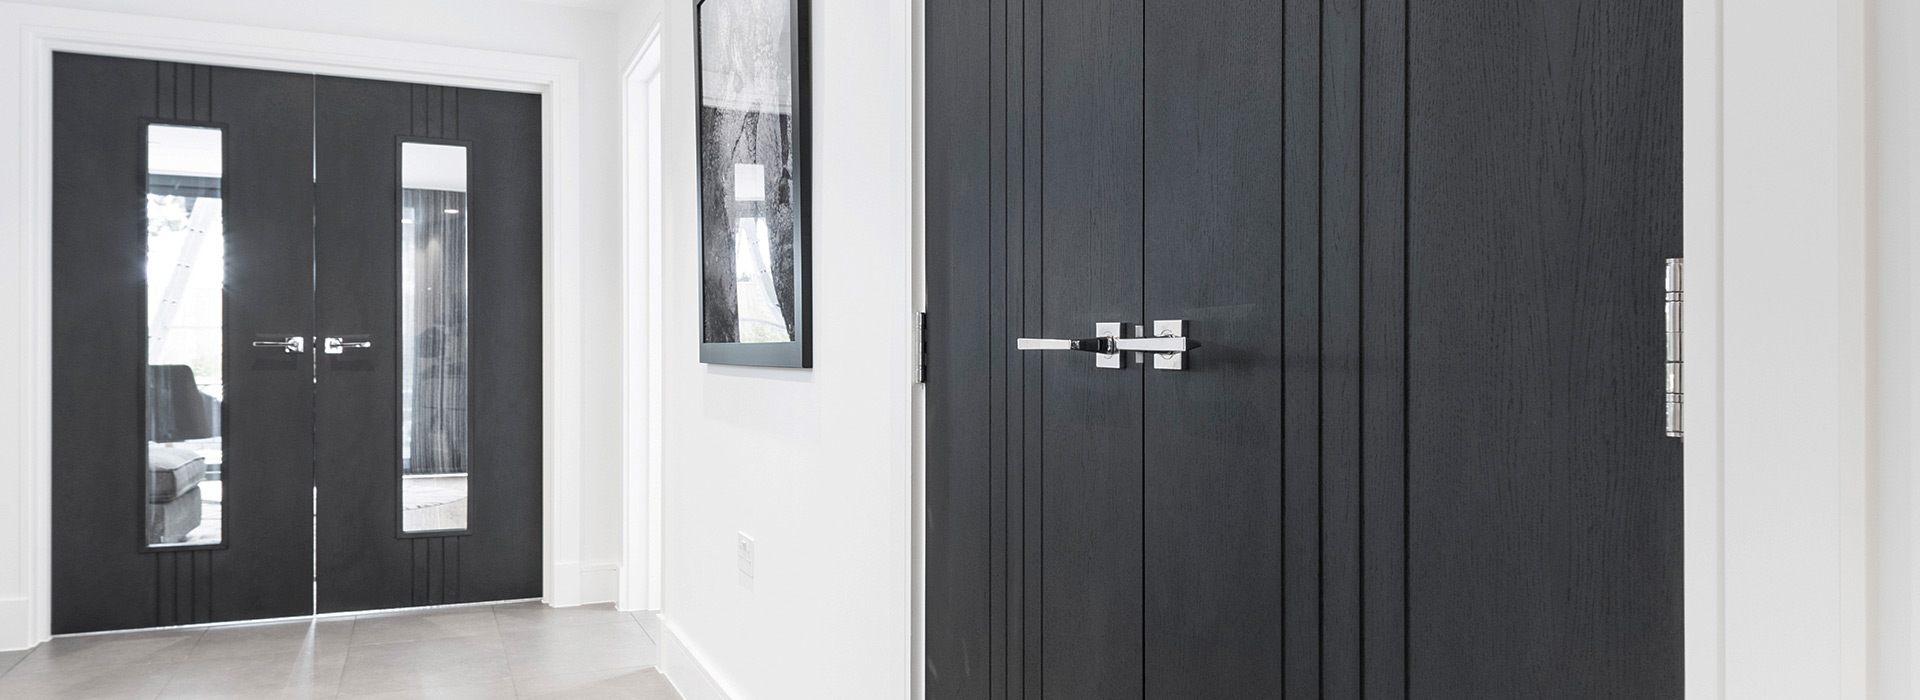 Slate black grooved double doors